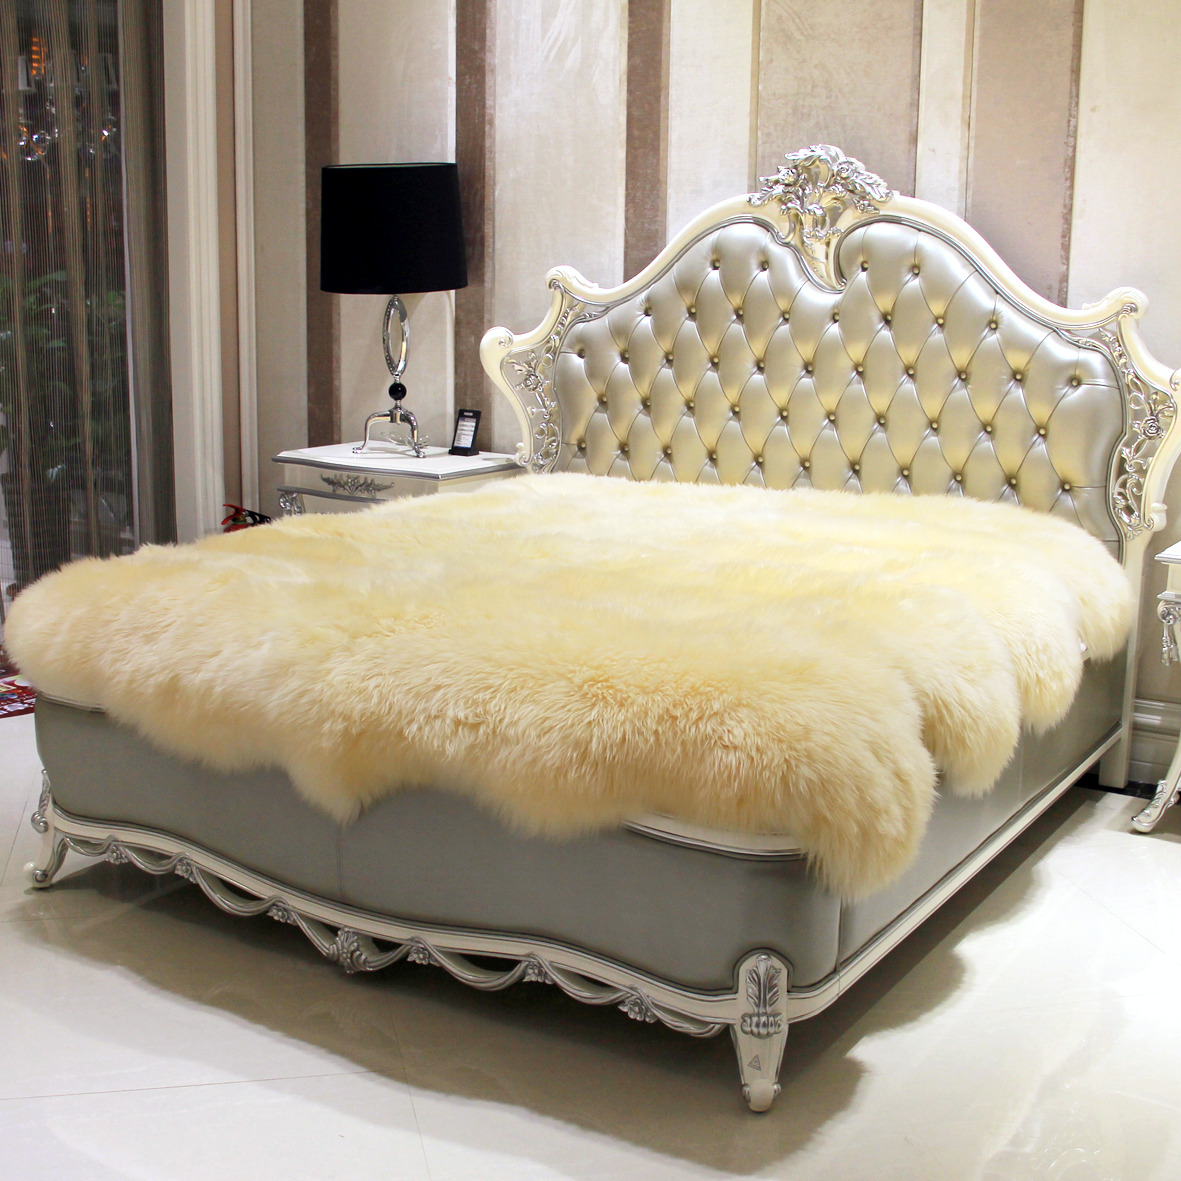 Wool Mattress Fur One Piece Sheepskin Meters Fleece Thickening Thermal Blanket Bed Cover Pad Bedspread In Covers Grippers